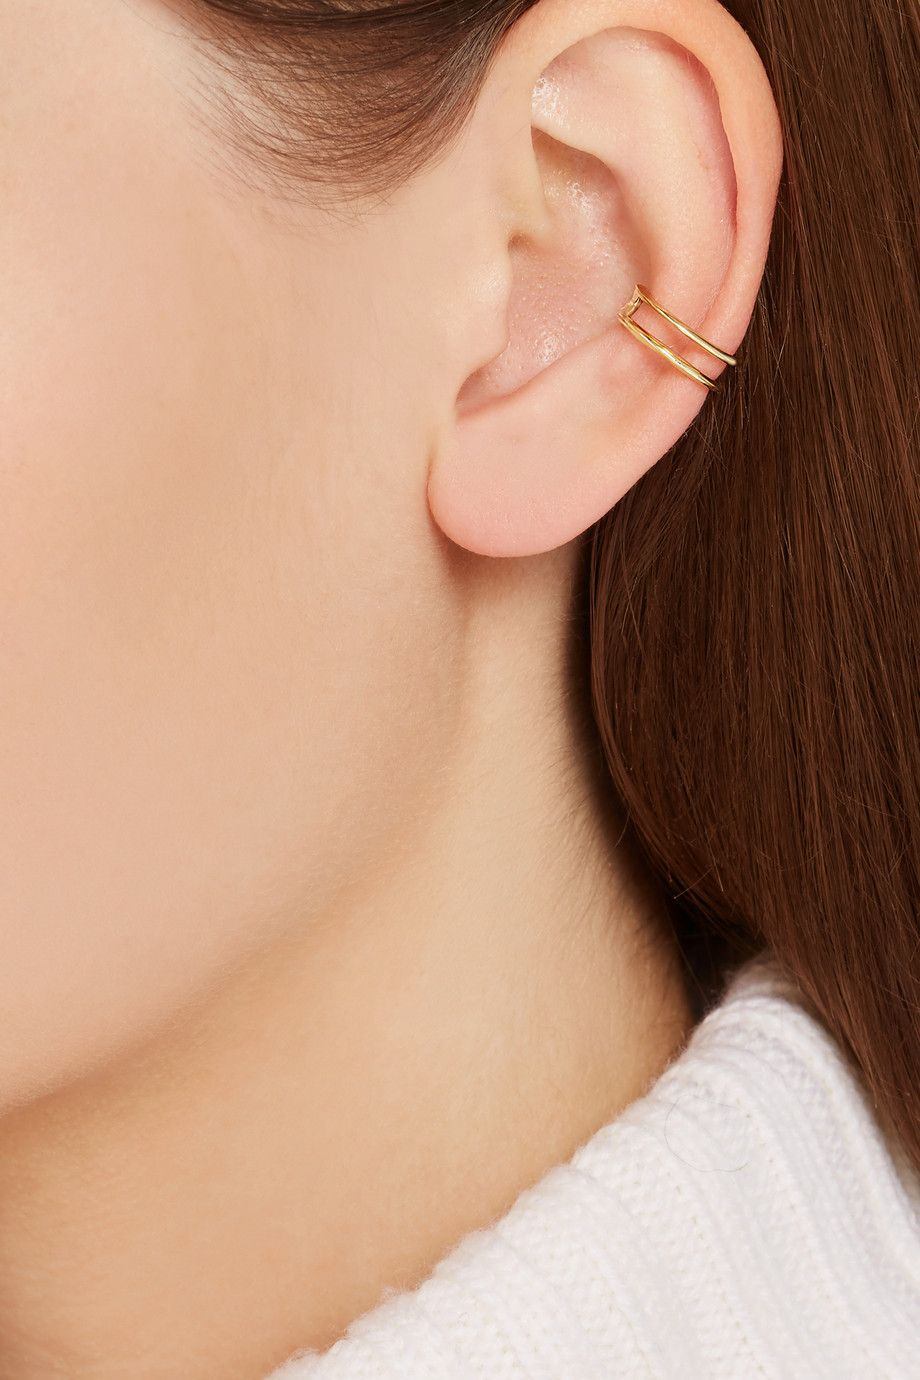 Bump after piercing  Wendy Nichol  karat gold ear cuff  NETAPORTERCOM  Jewellery